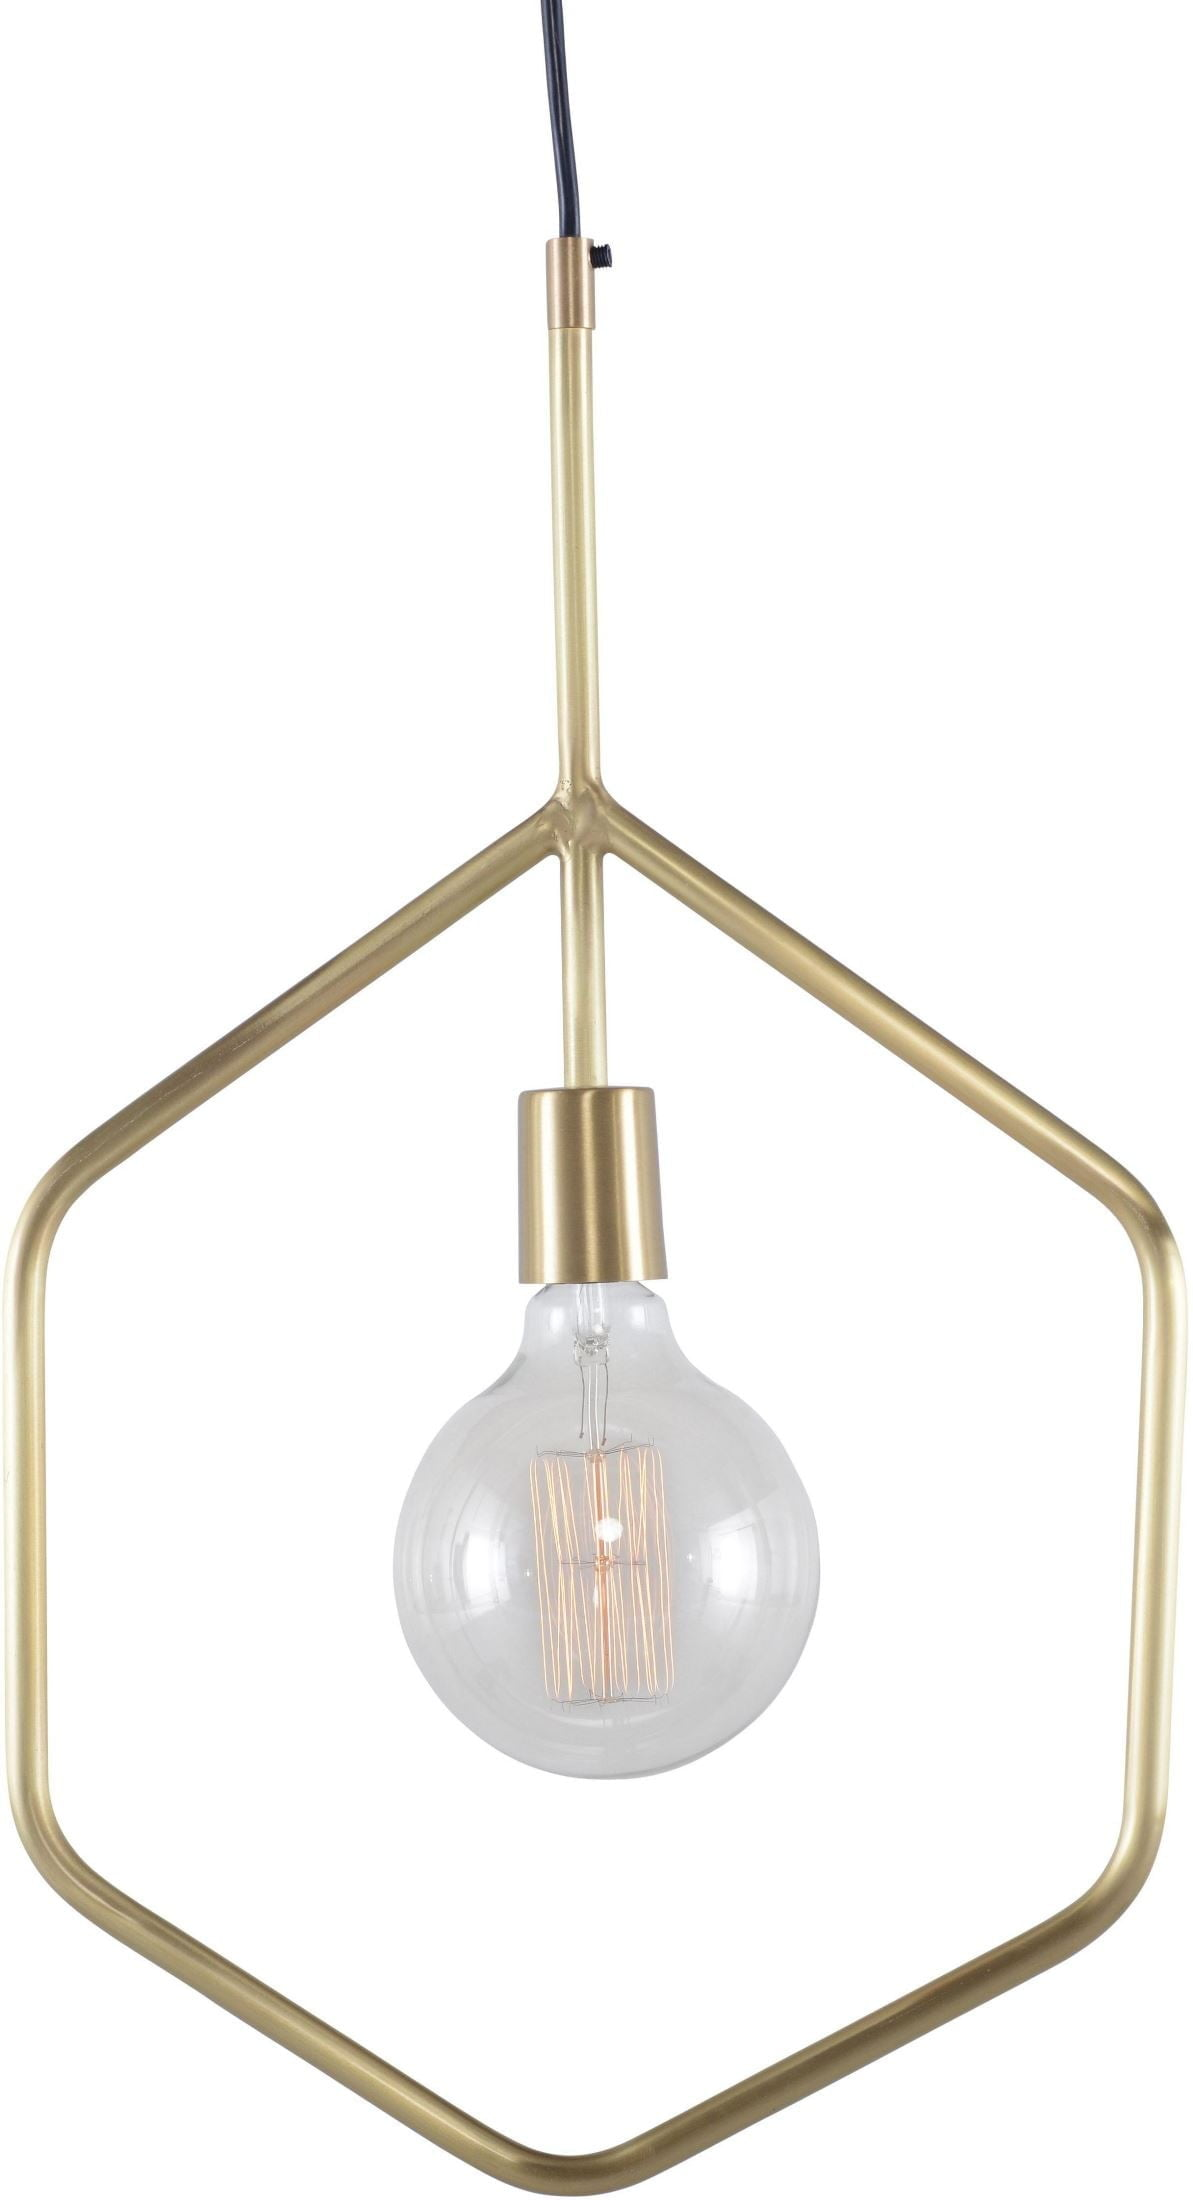 firstlight antique pendant roxy products brass lampsy